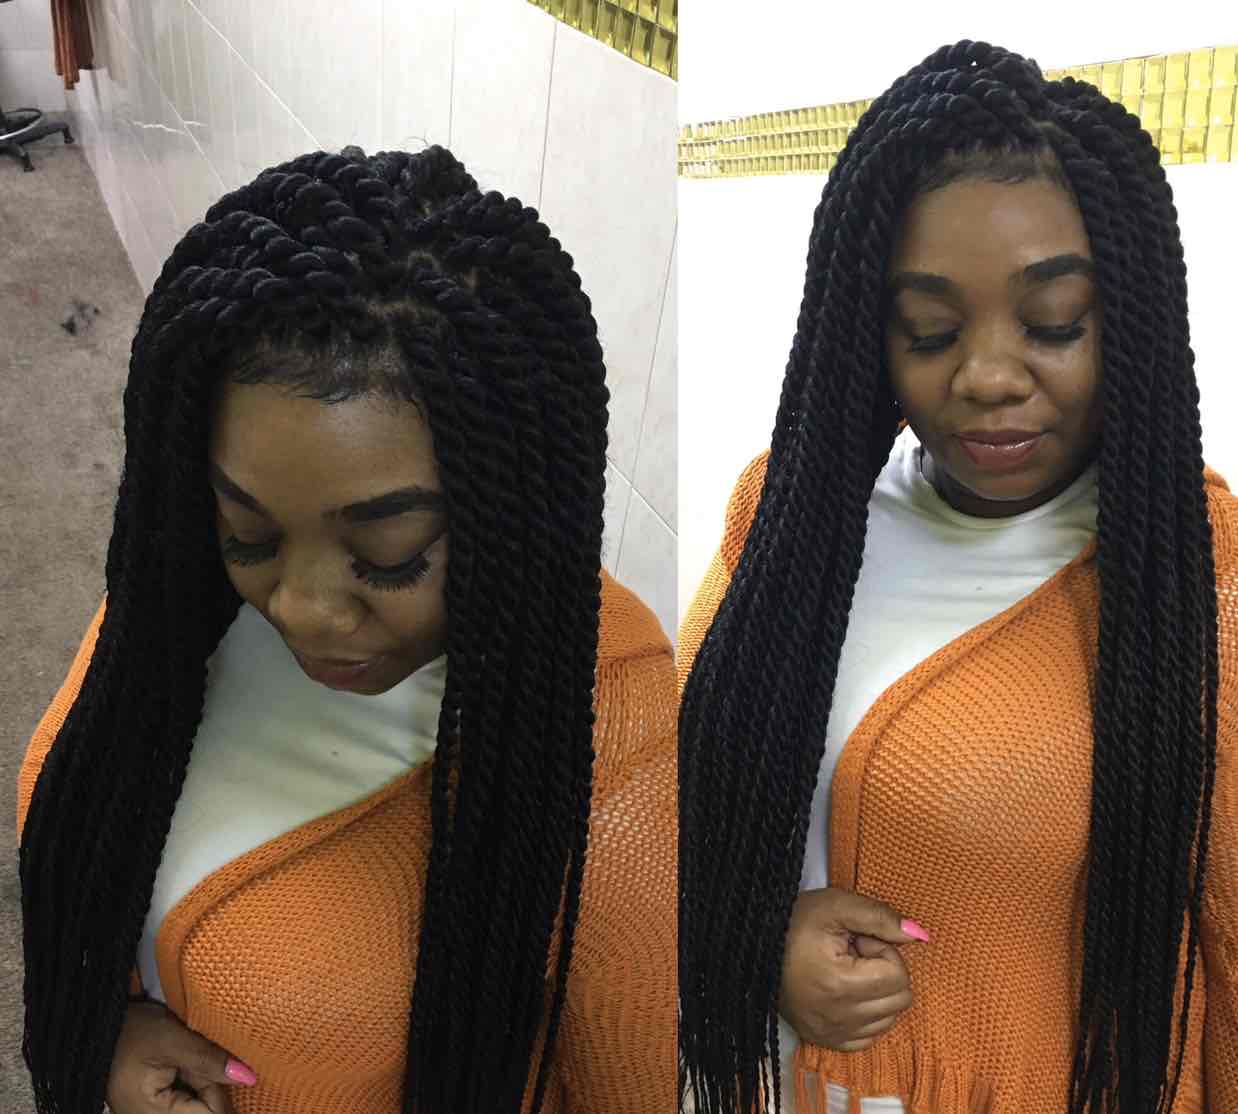 salon de coiffure afro tresse tresses box braids crochet braids vanilles tissages paris 75 77 78 91 92 93 94 95 GBUPGDMX